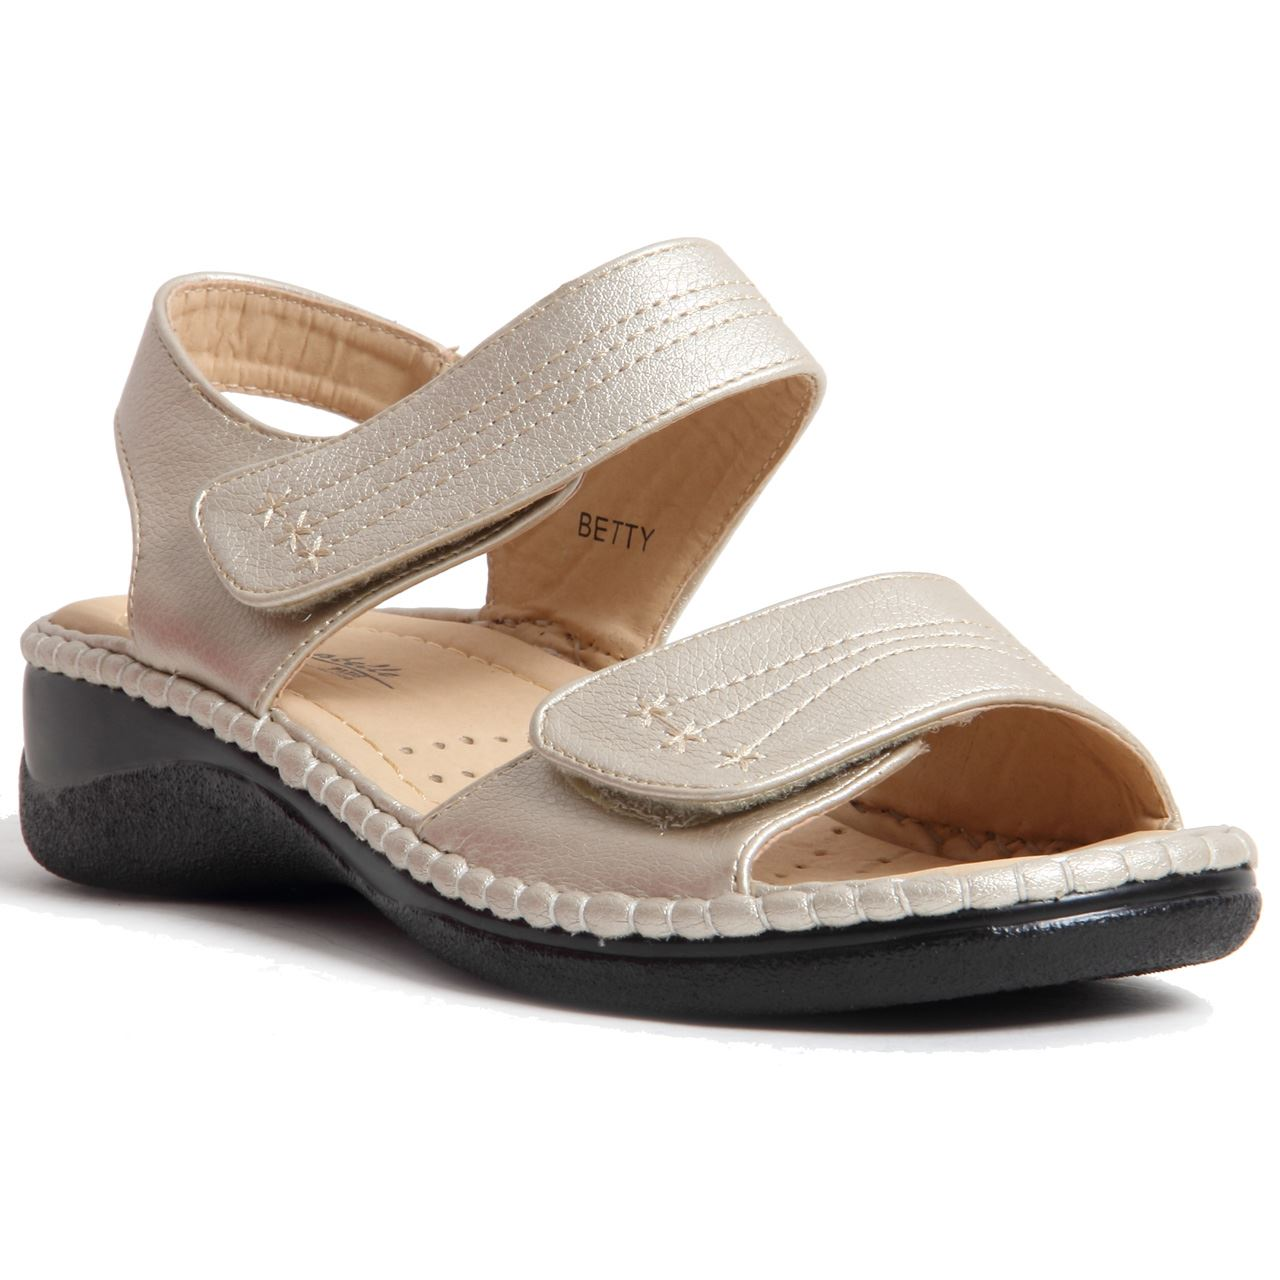 Unique Comfortable Flat Leather Sandals Womens CW306201